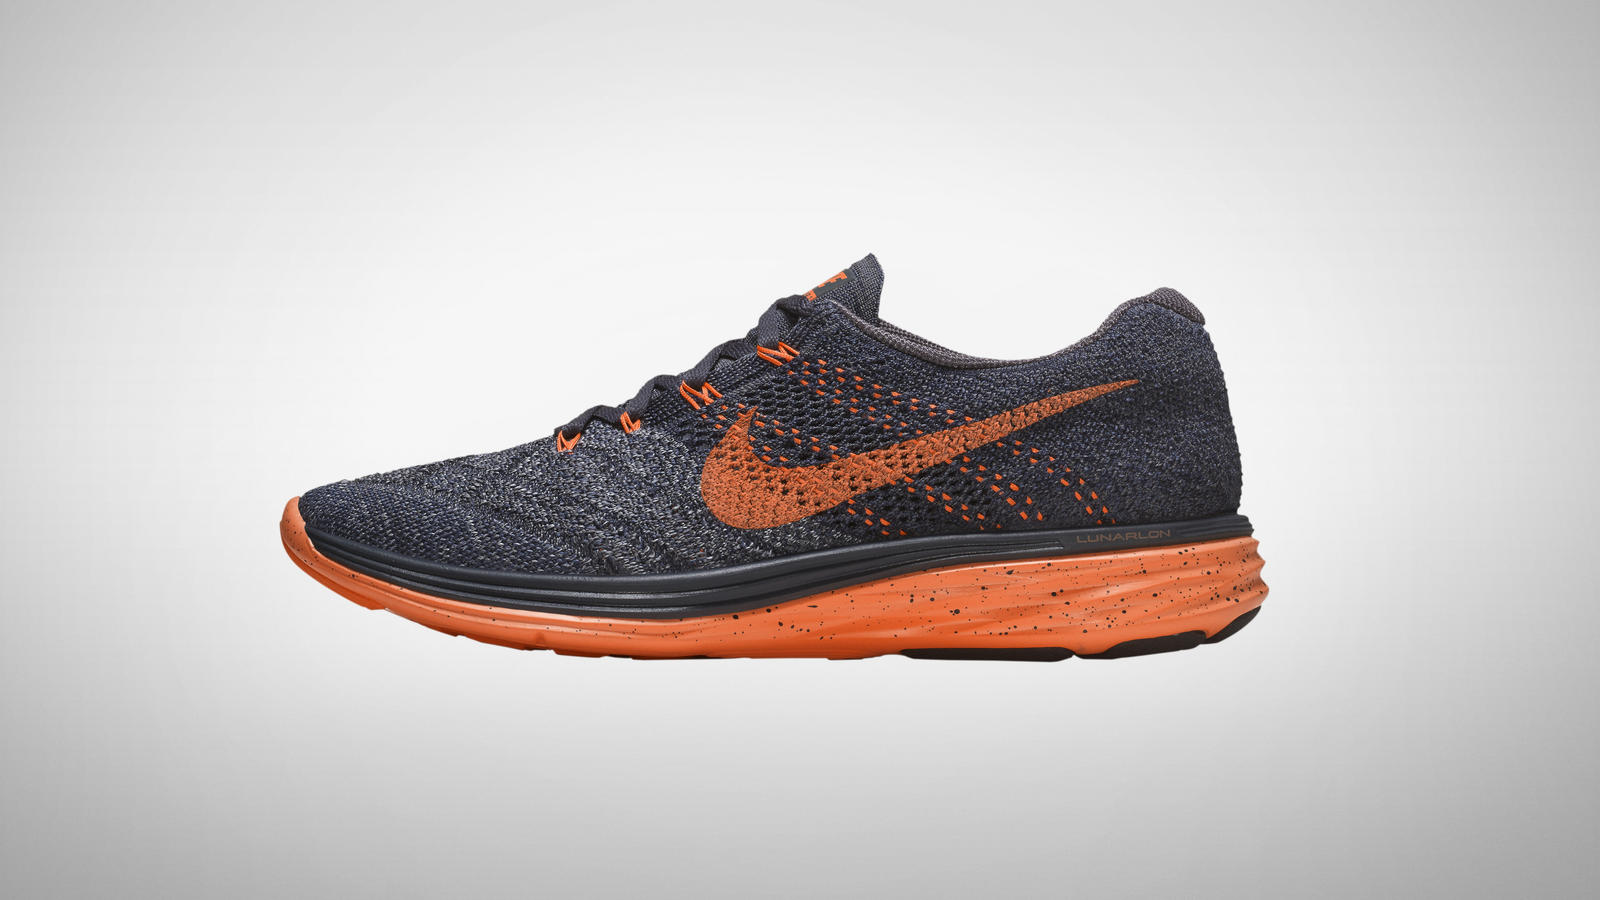 Nike Flyknit Lunar 3 Made Light To Go Long Nike News